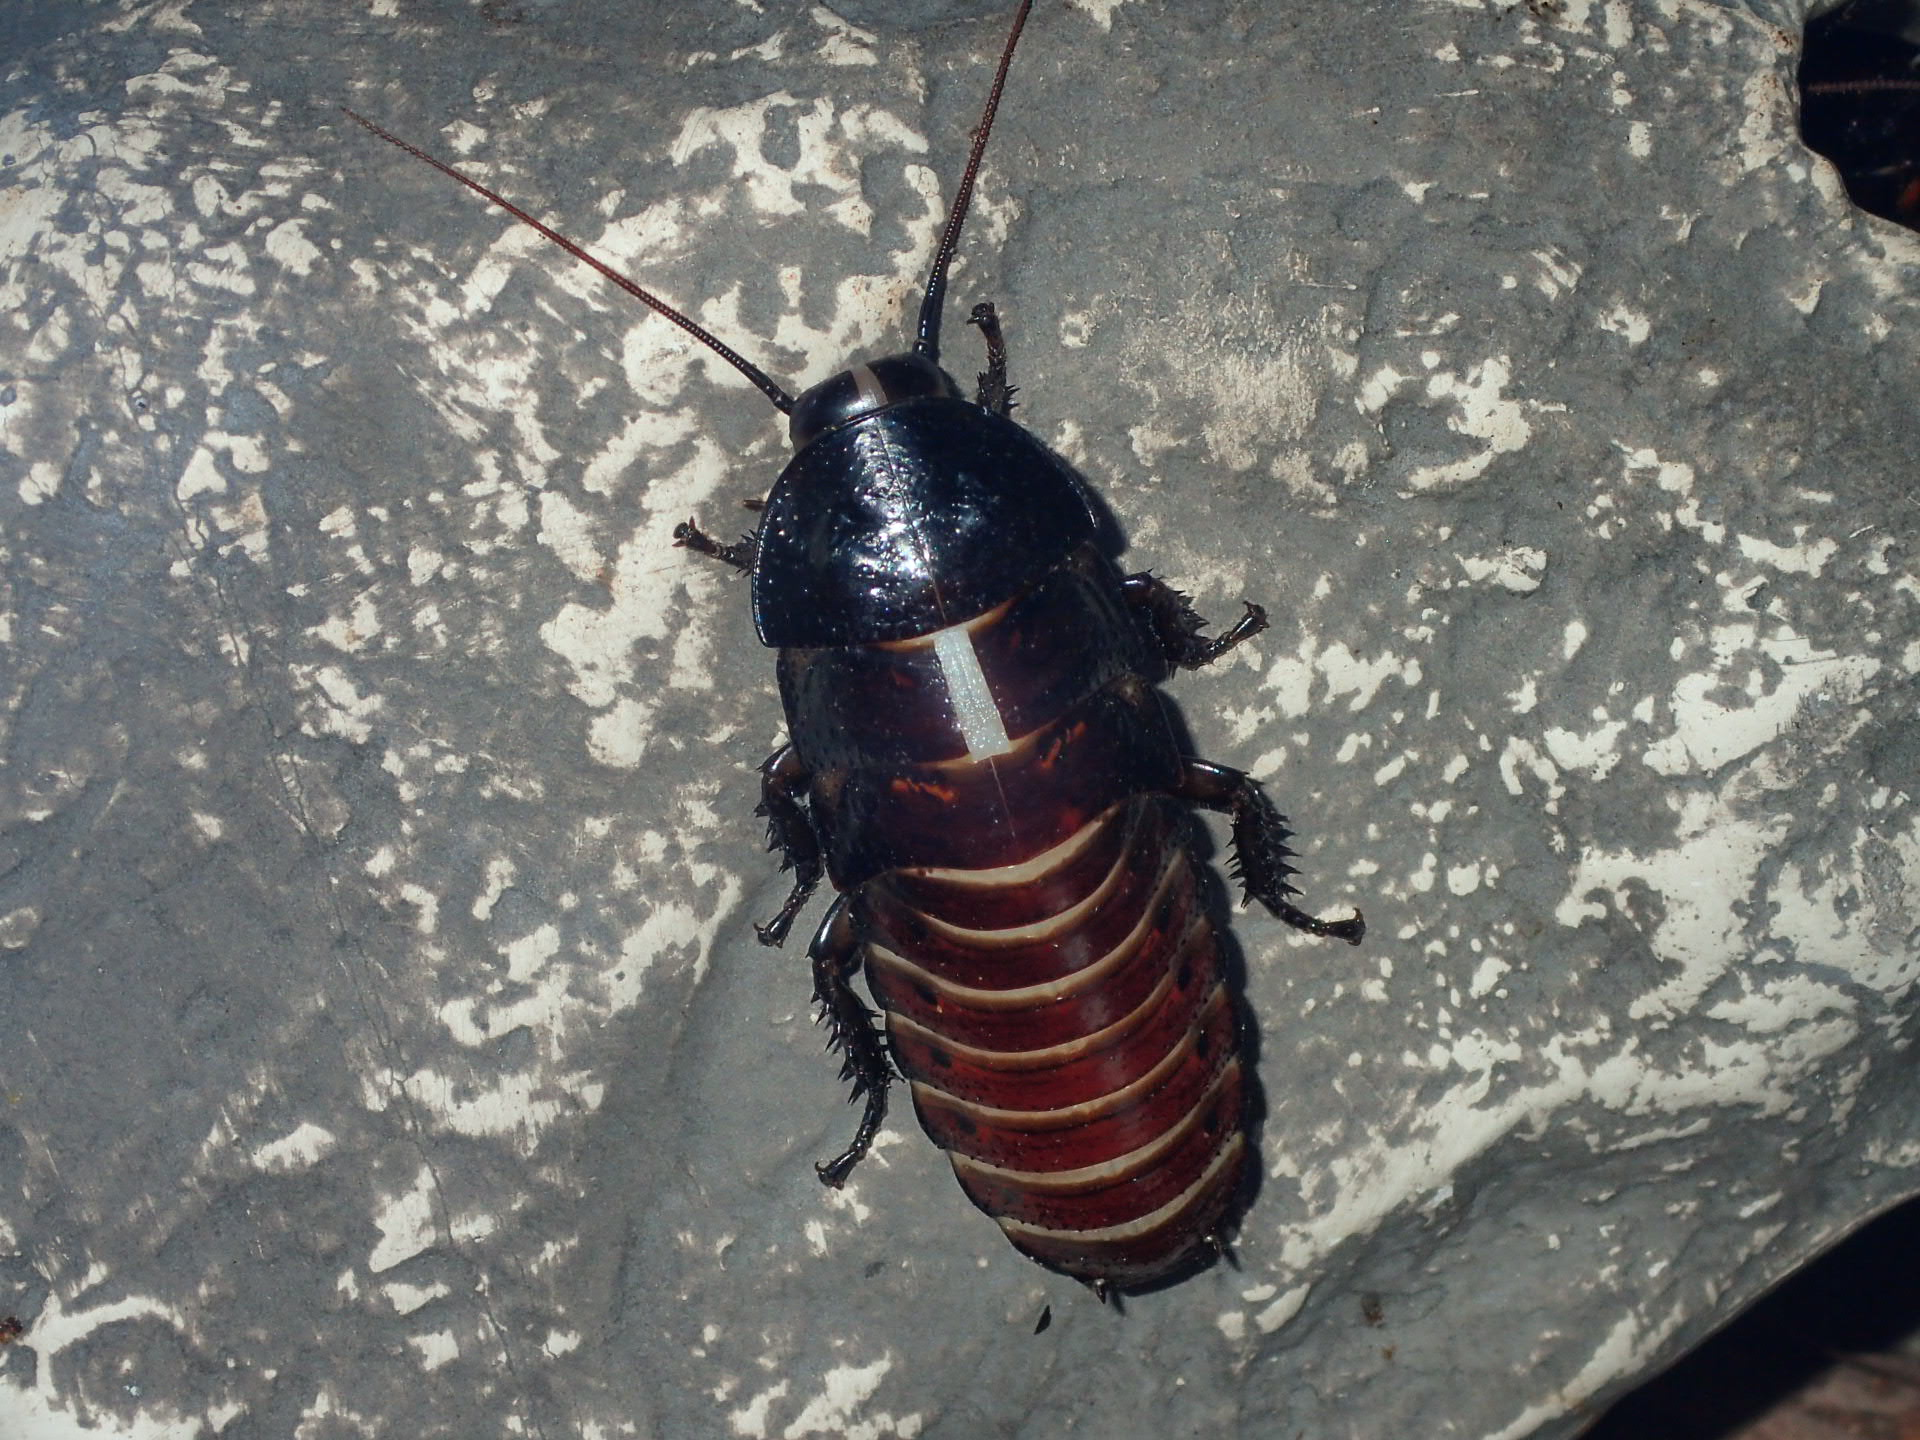 Hissing Cockroach - Molting begins!